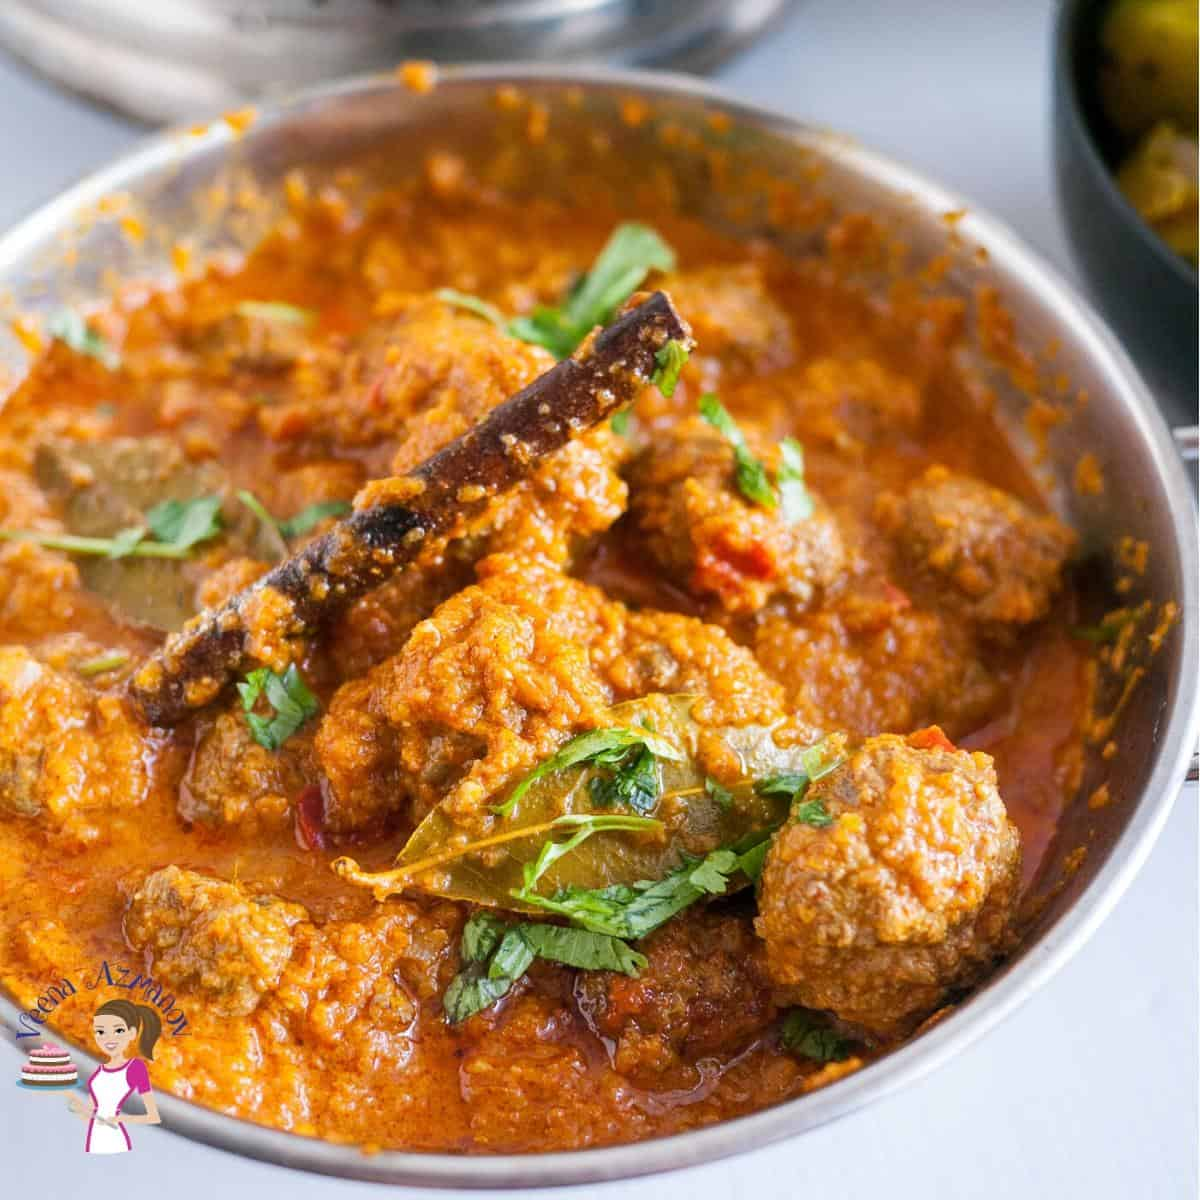 A bowl of Indian meatball curry.